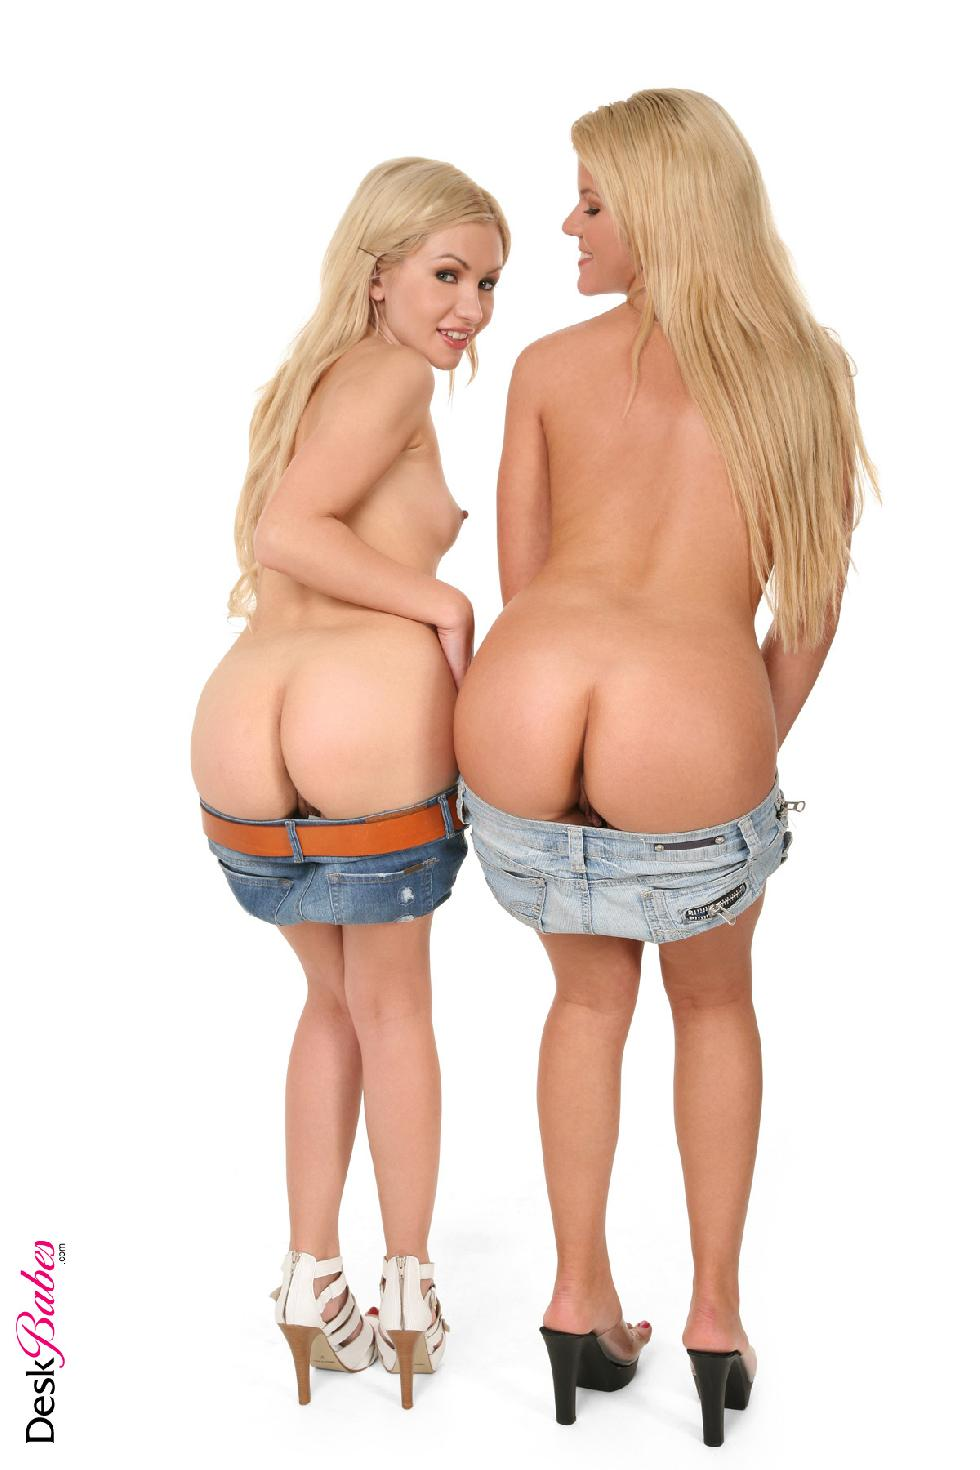 Two blondes lesbians named Zorah White and Sasha Rose - 6